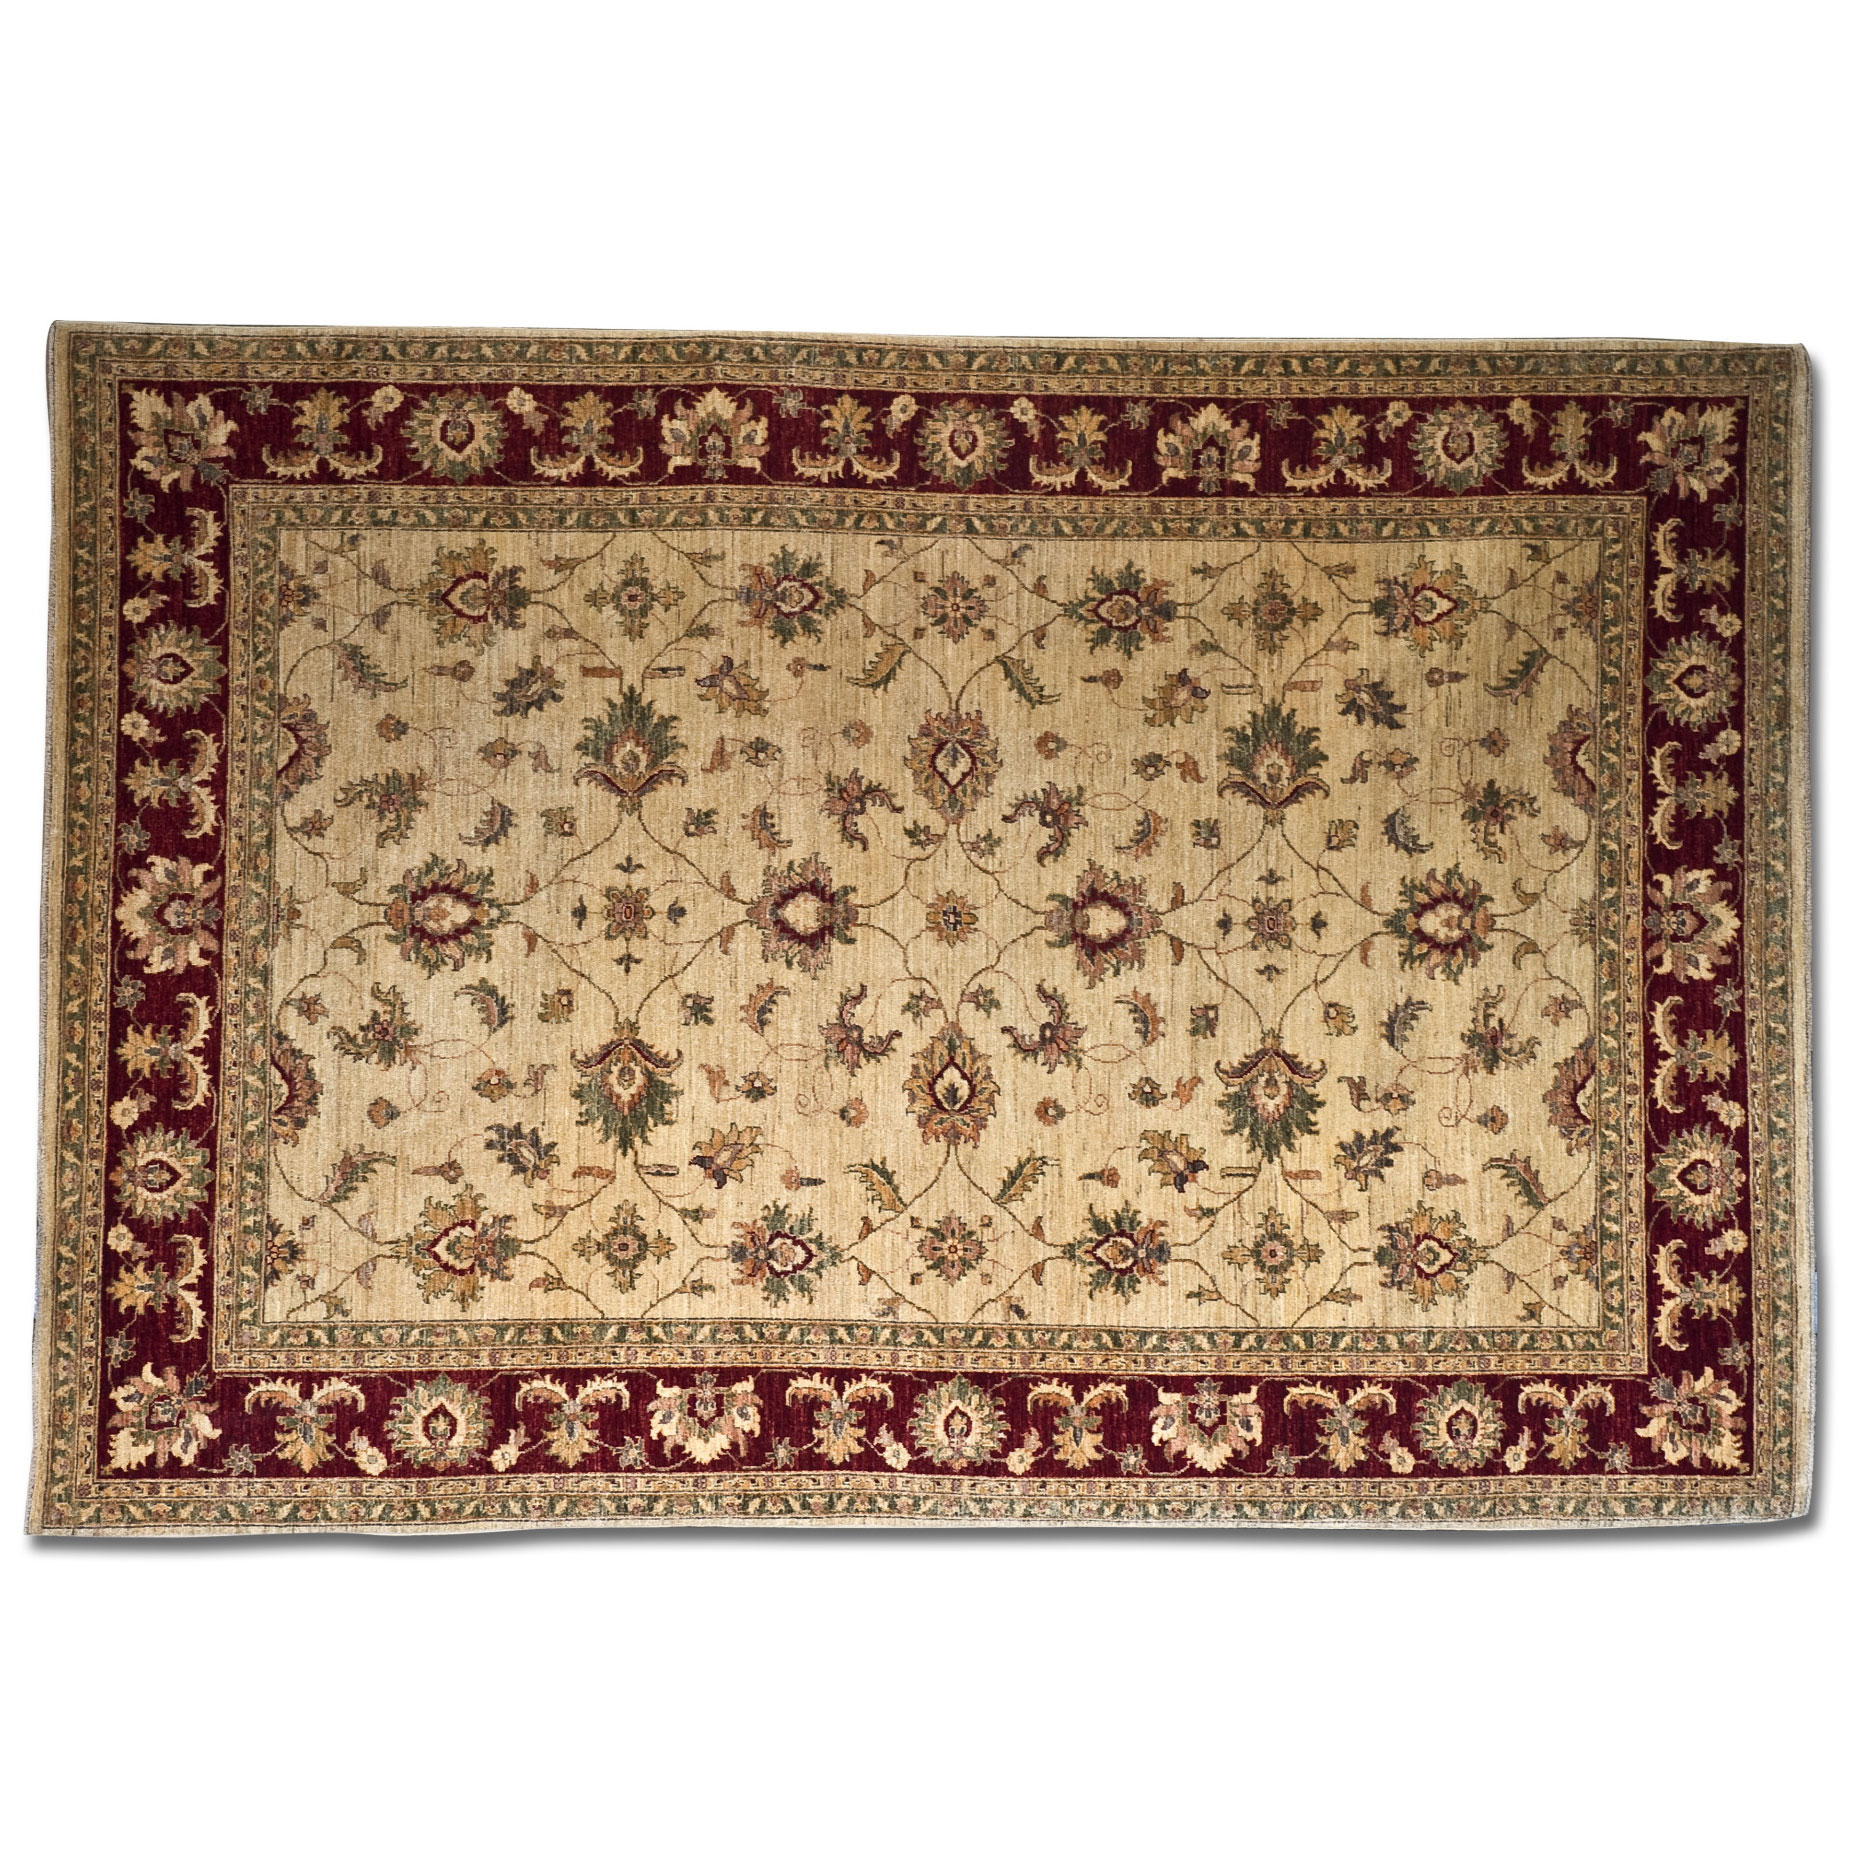 Mahal traditional rug